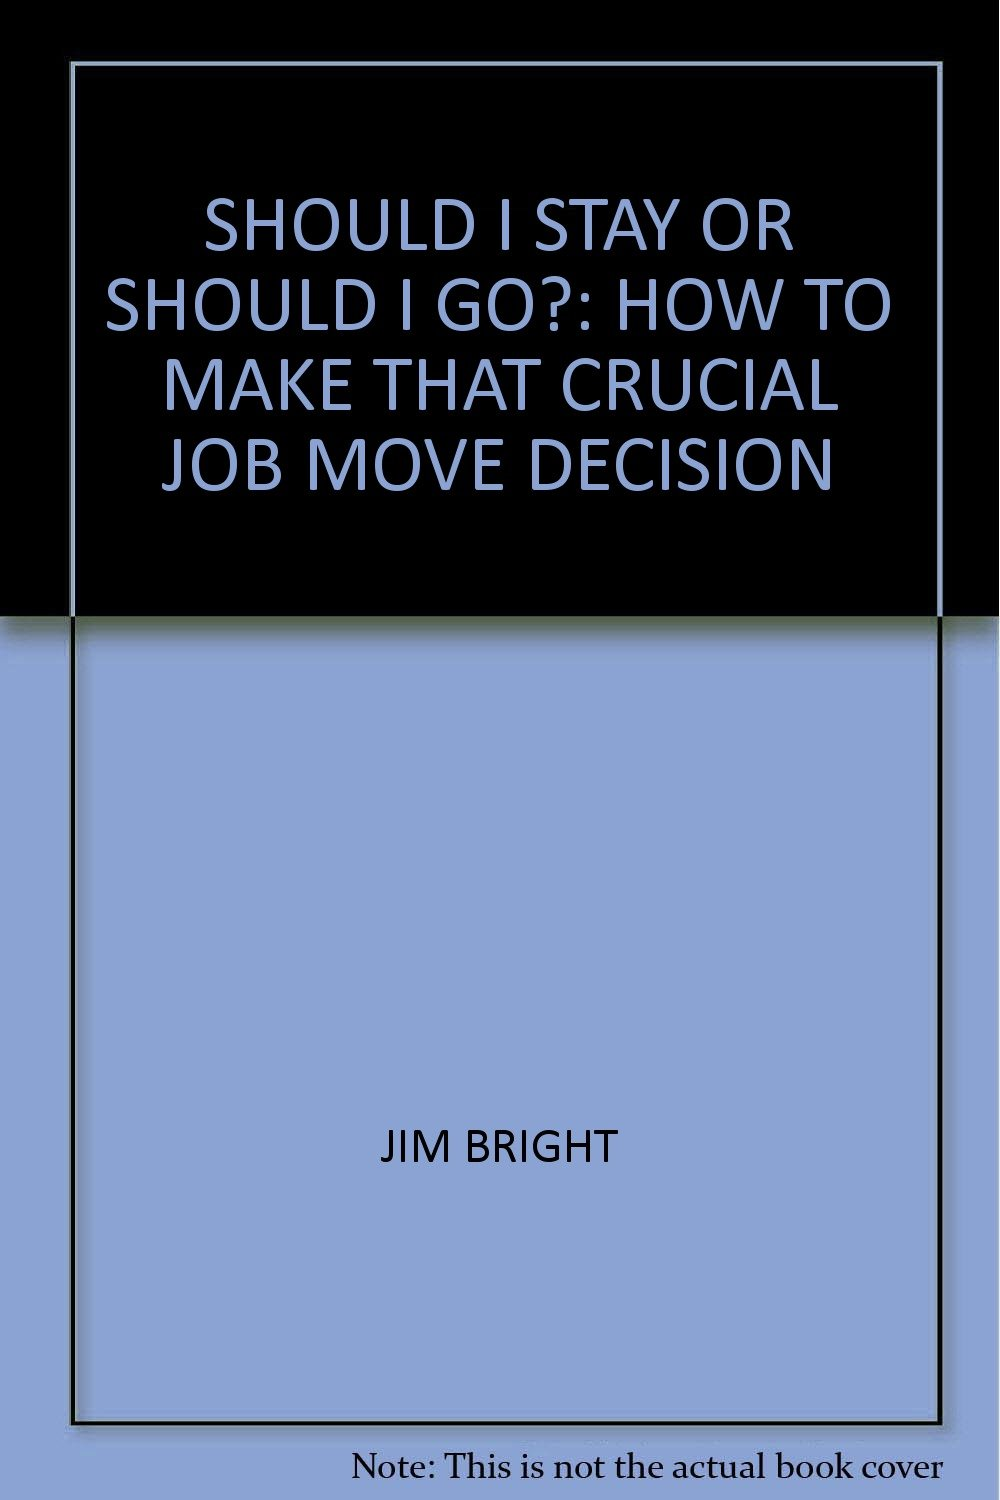 SHOULD I STAY OR SHOULD I GO?: HOW TO MAKE THAT CRUCIAL JOB MOVE DECISION ebook